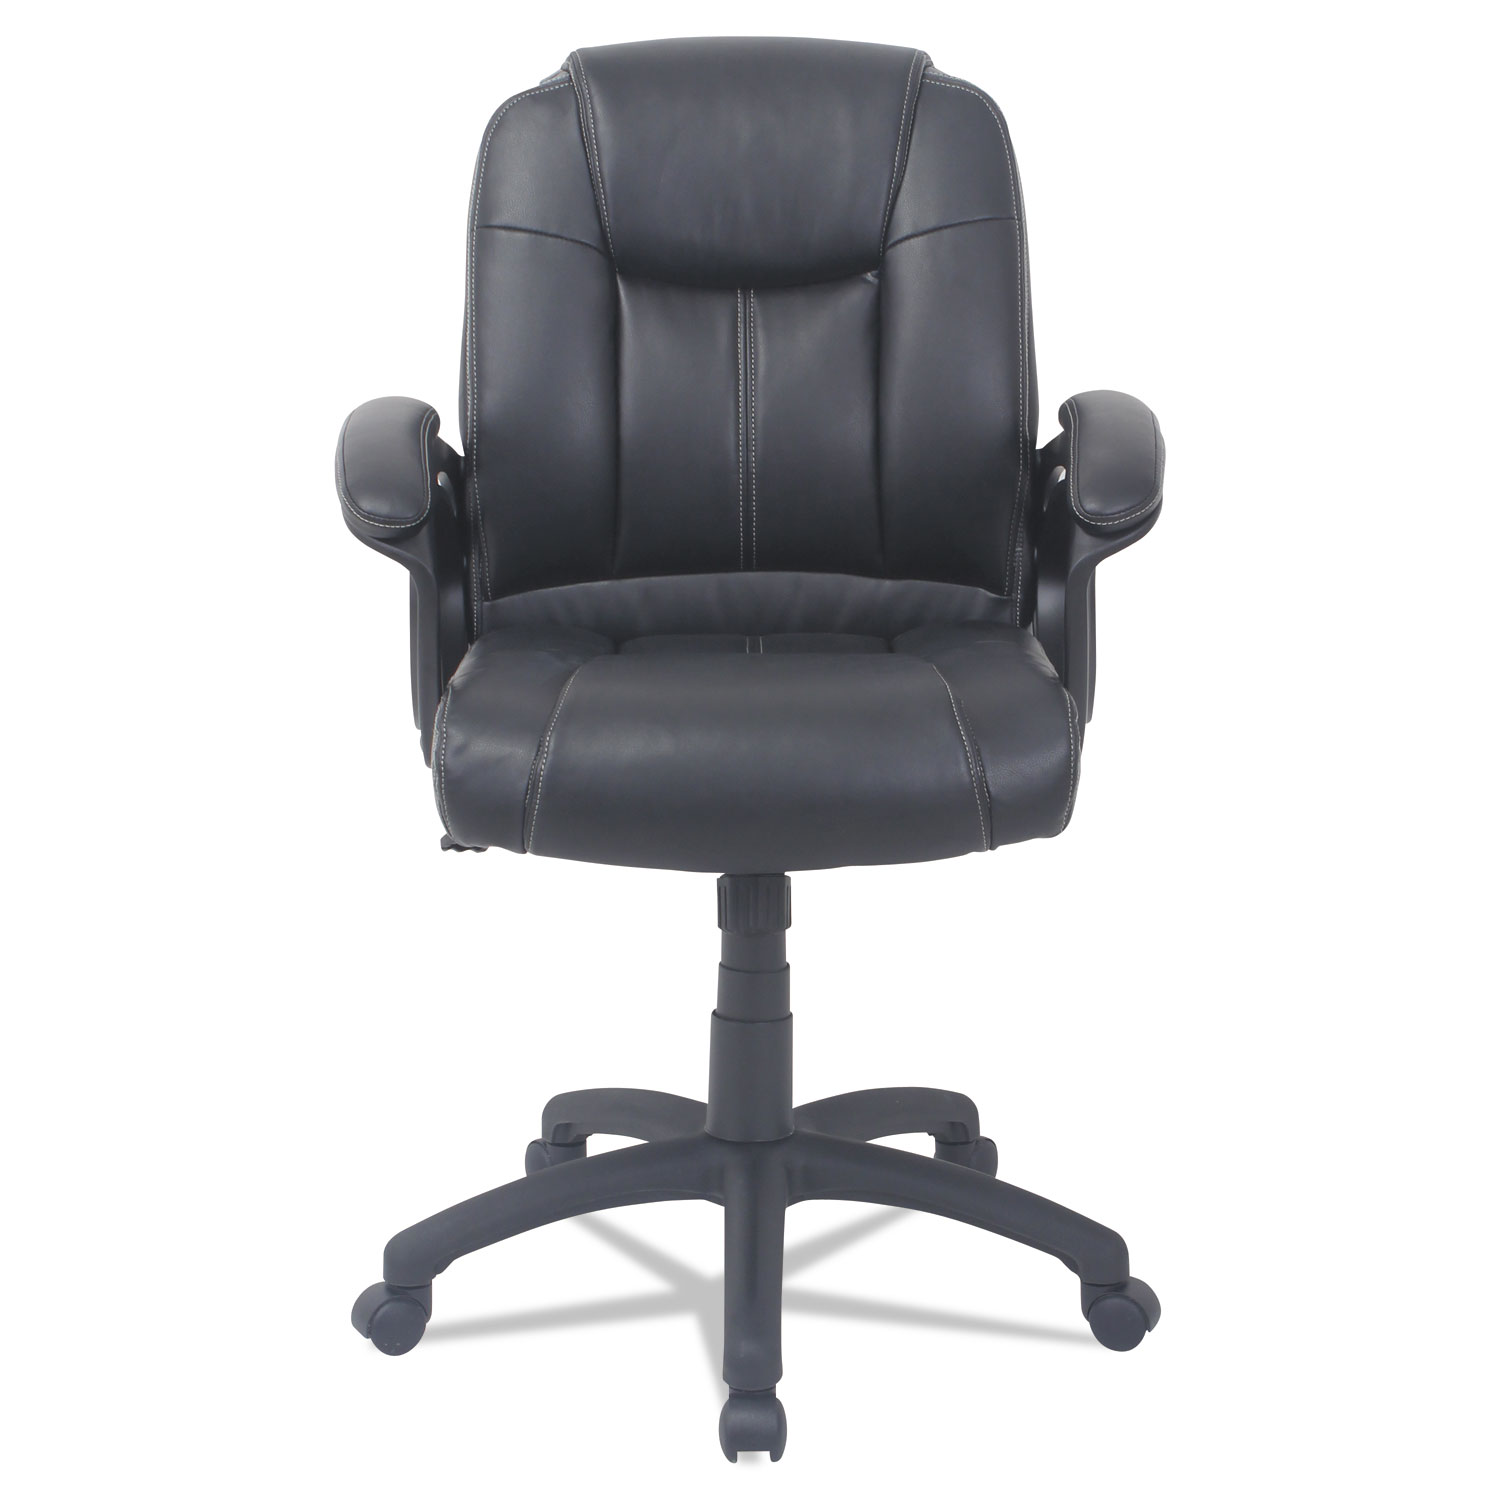 Executive Leather Chair Alera Cc Series Executive Mid Back Leather Chair Supports Up To 275 Lbs Black Seat Black Back Black Base